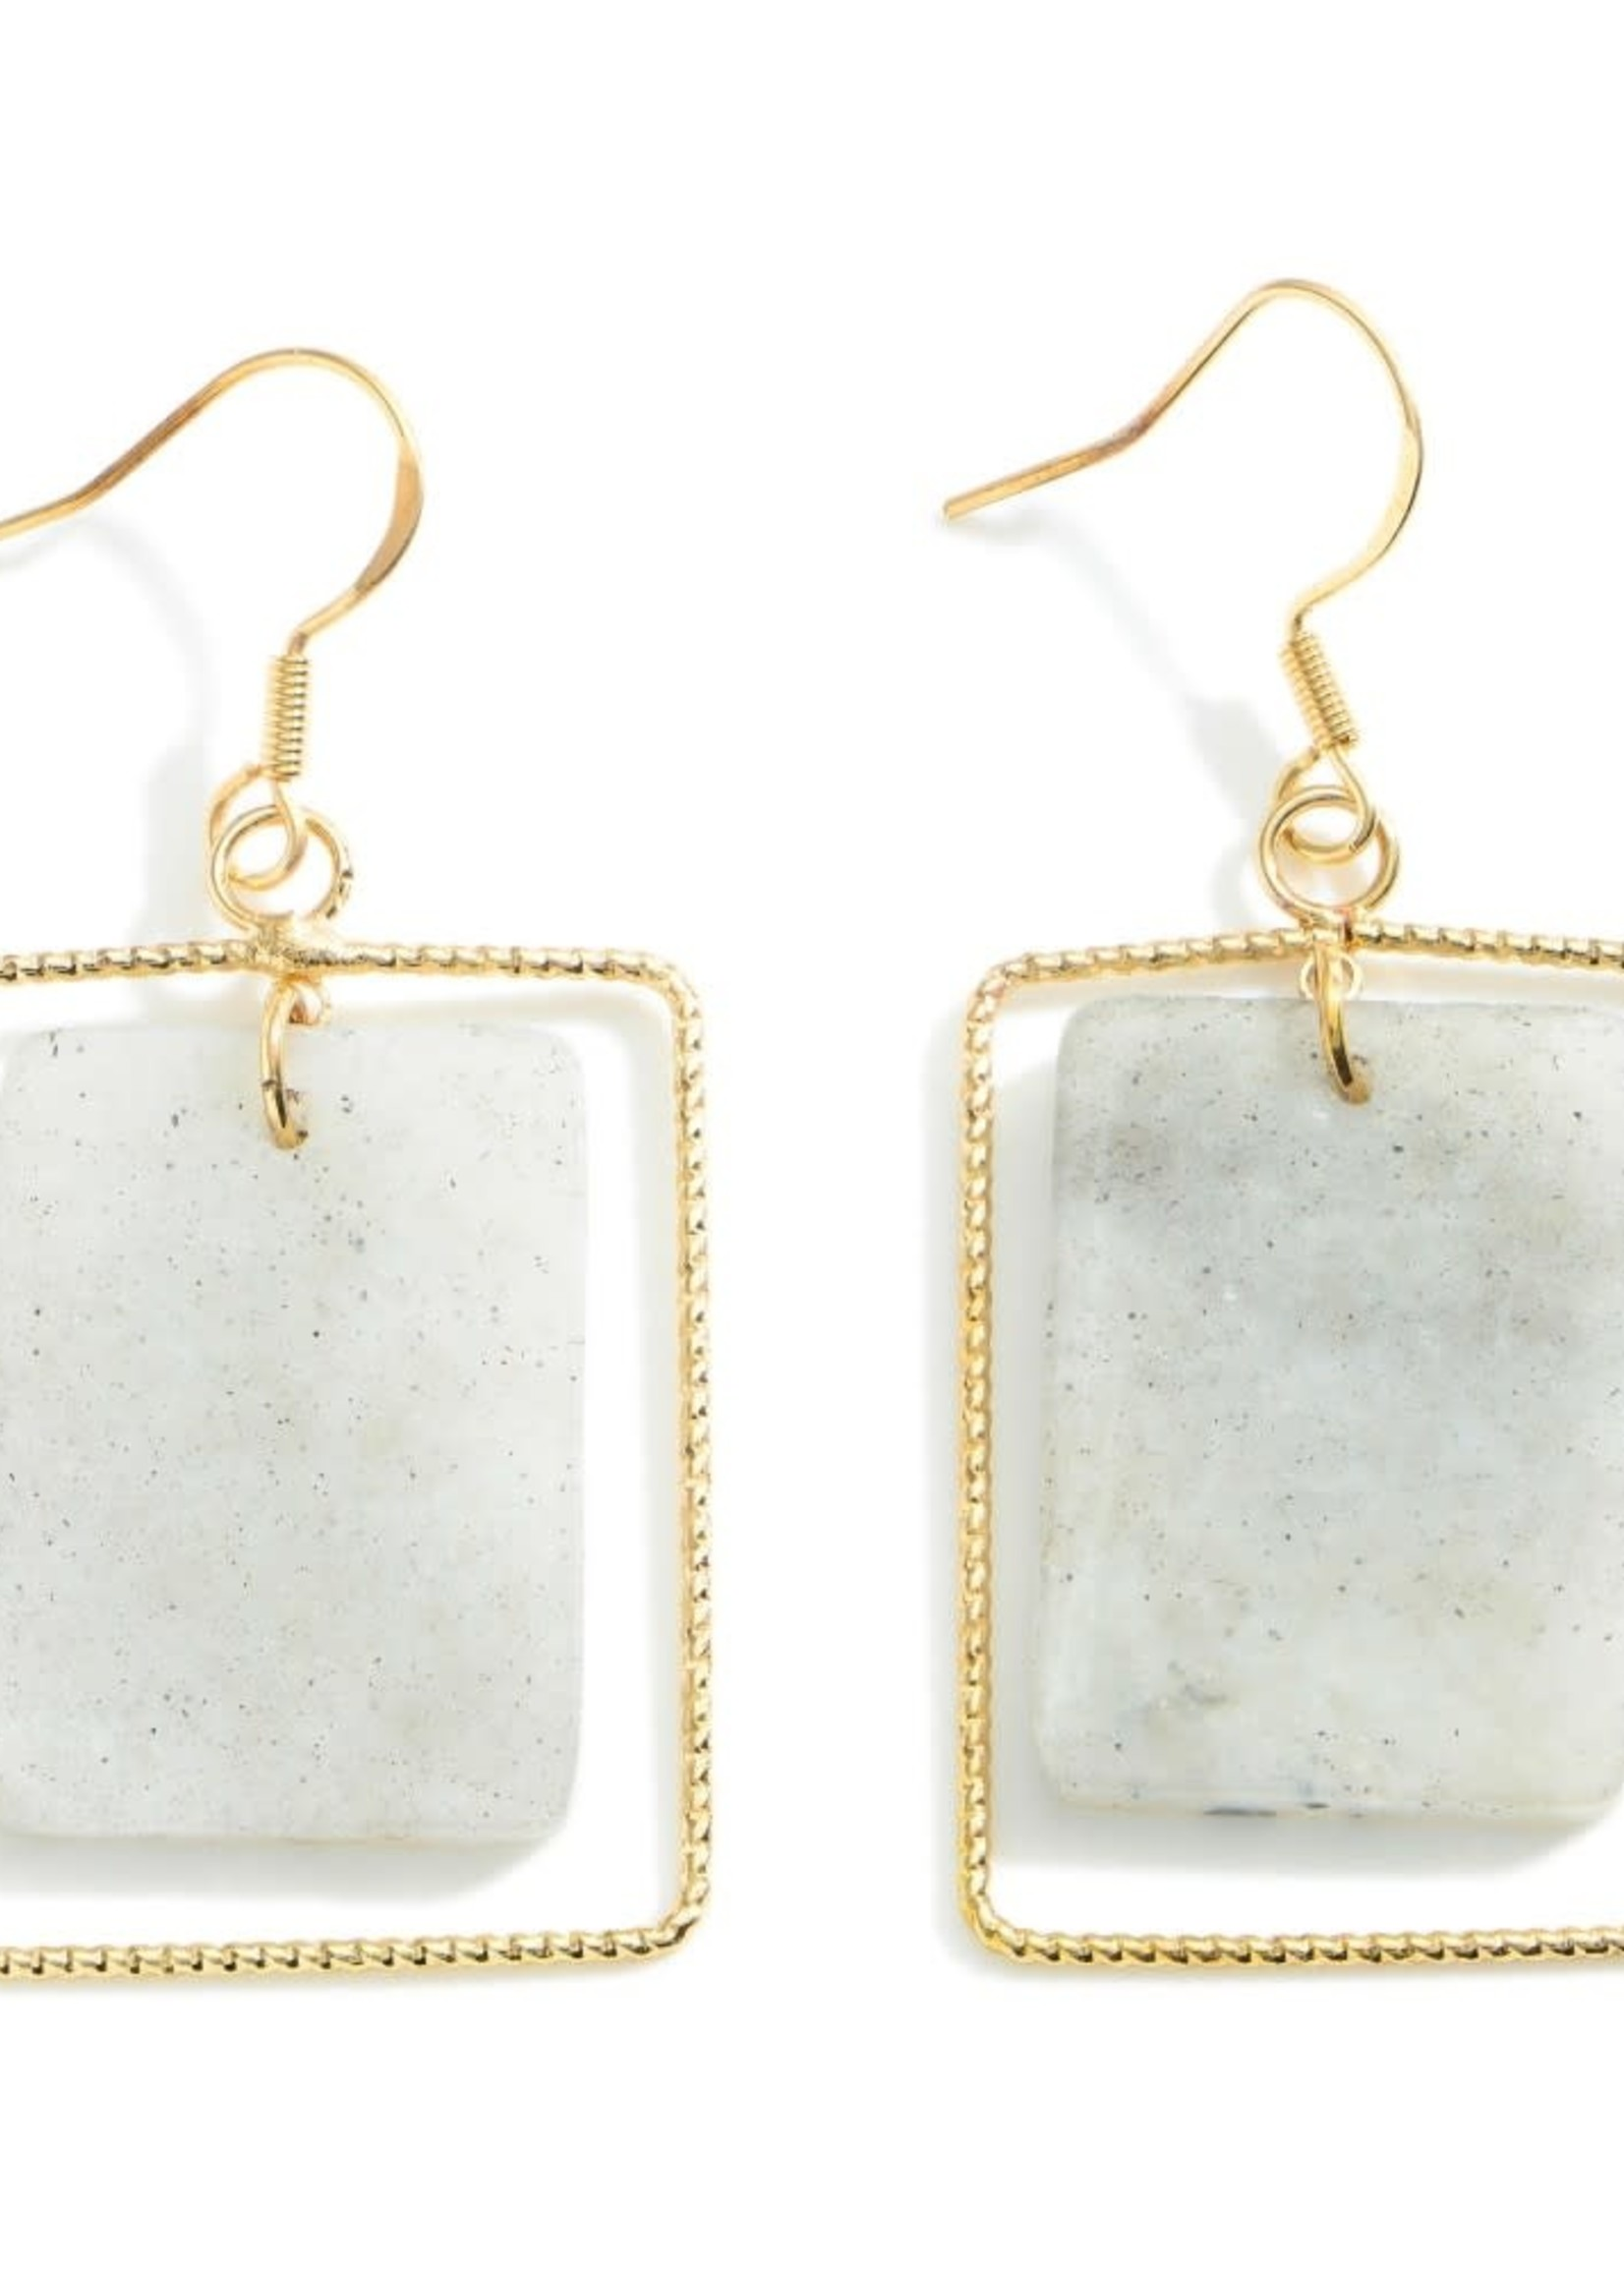 Gold Drop Earrings Featuring Natural Stone Accents